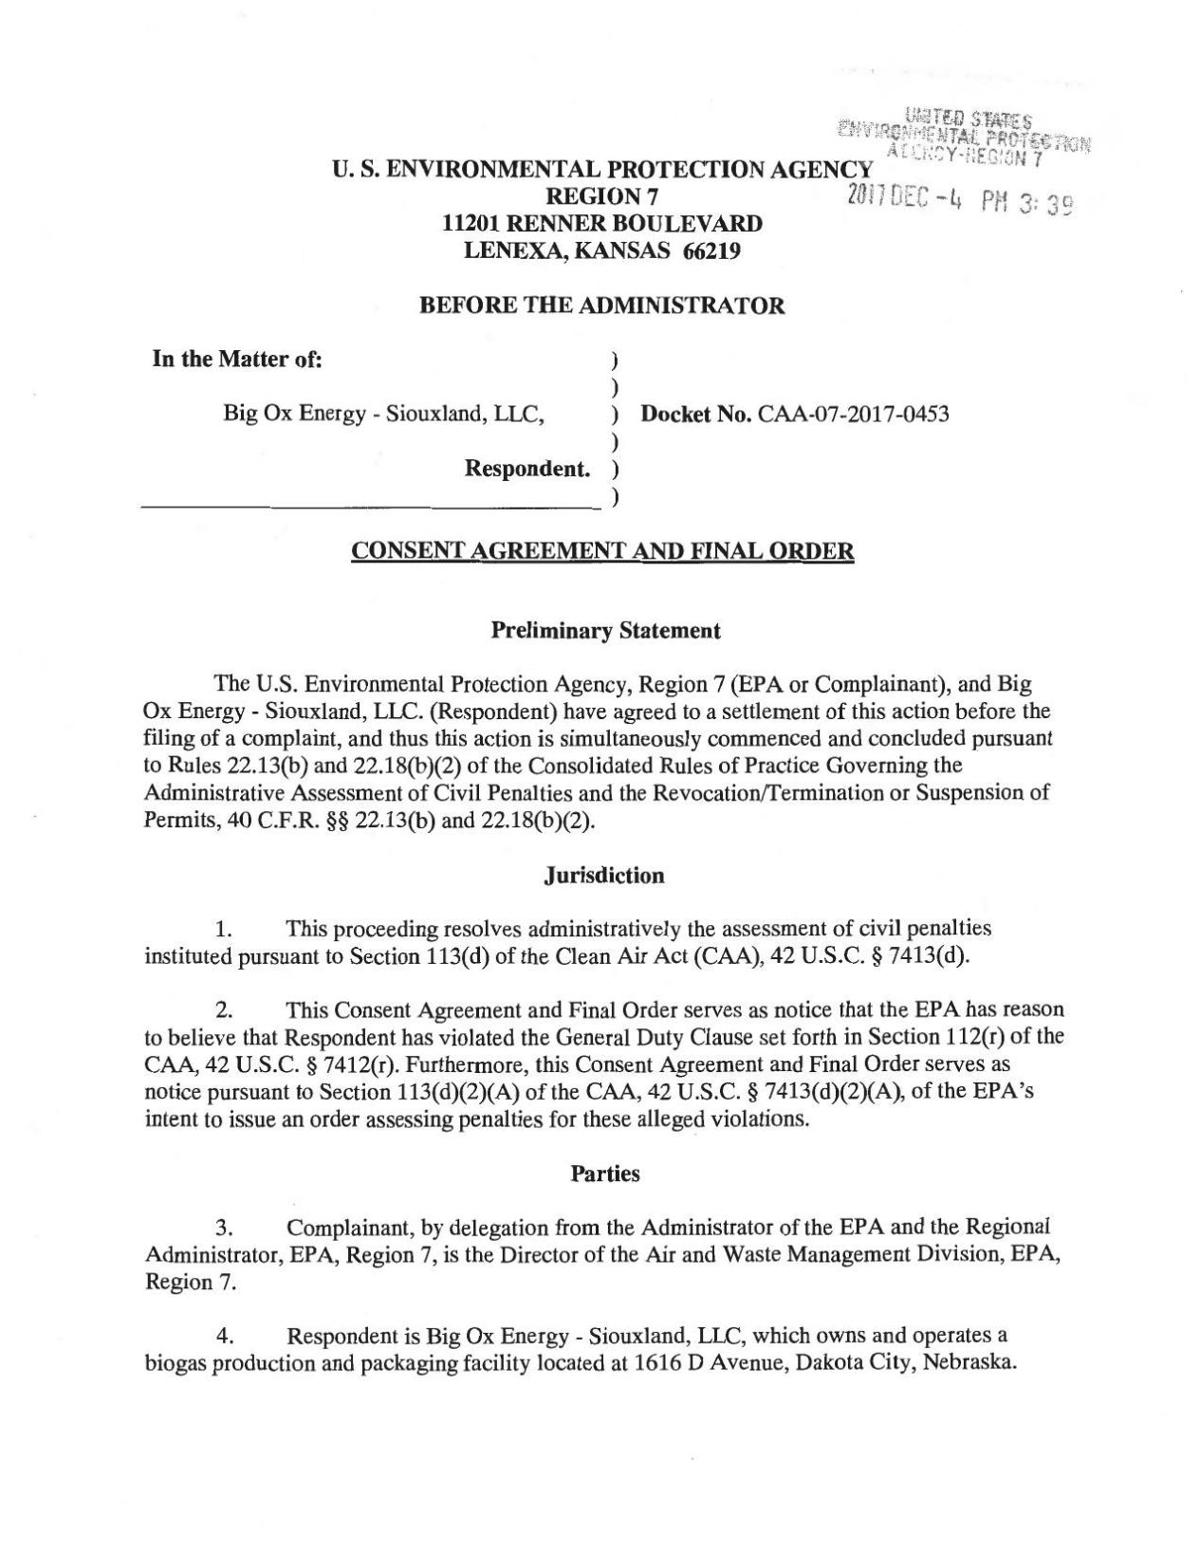 Click here to read Big Ox Energy's settlement with the EPA